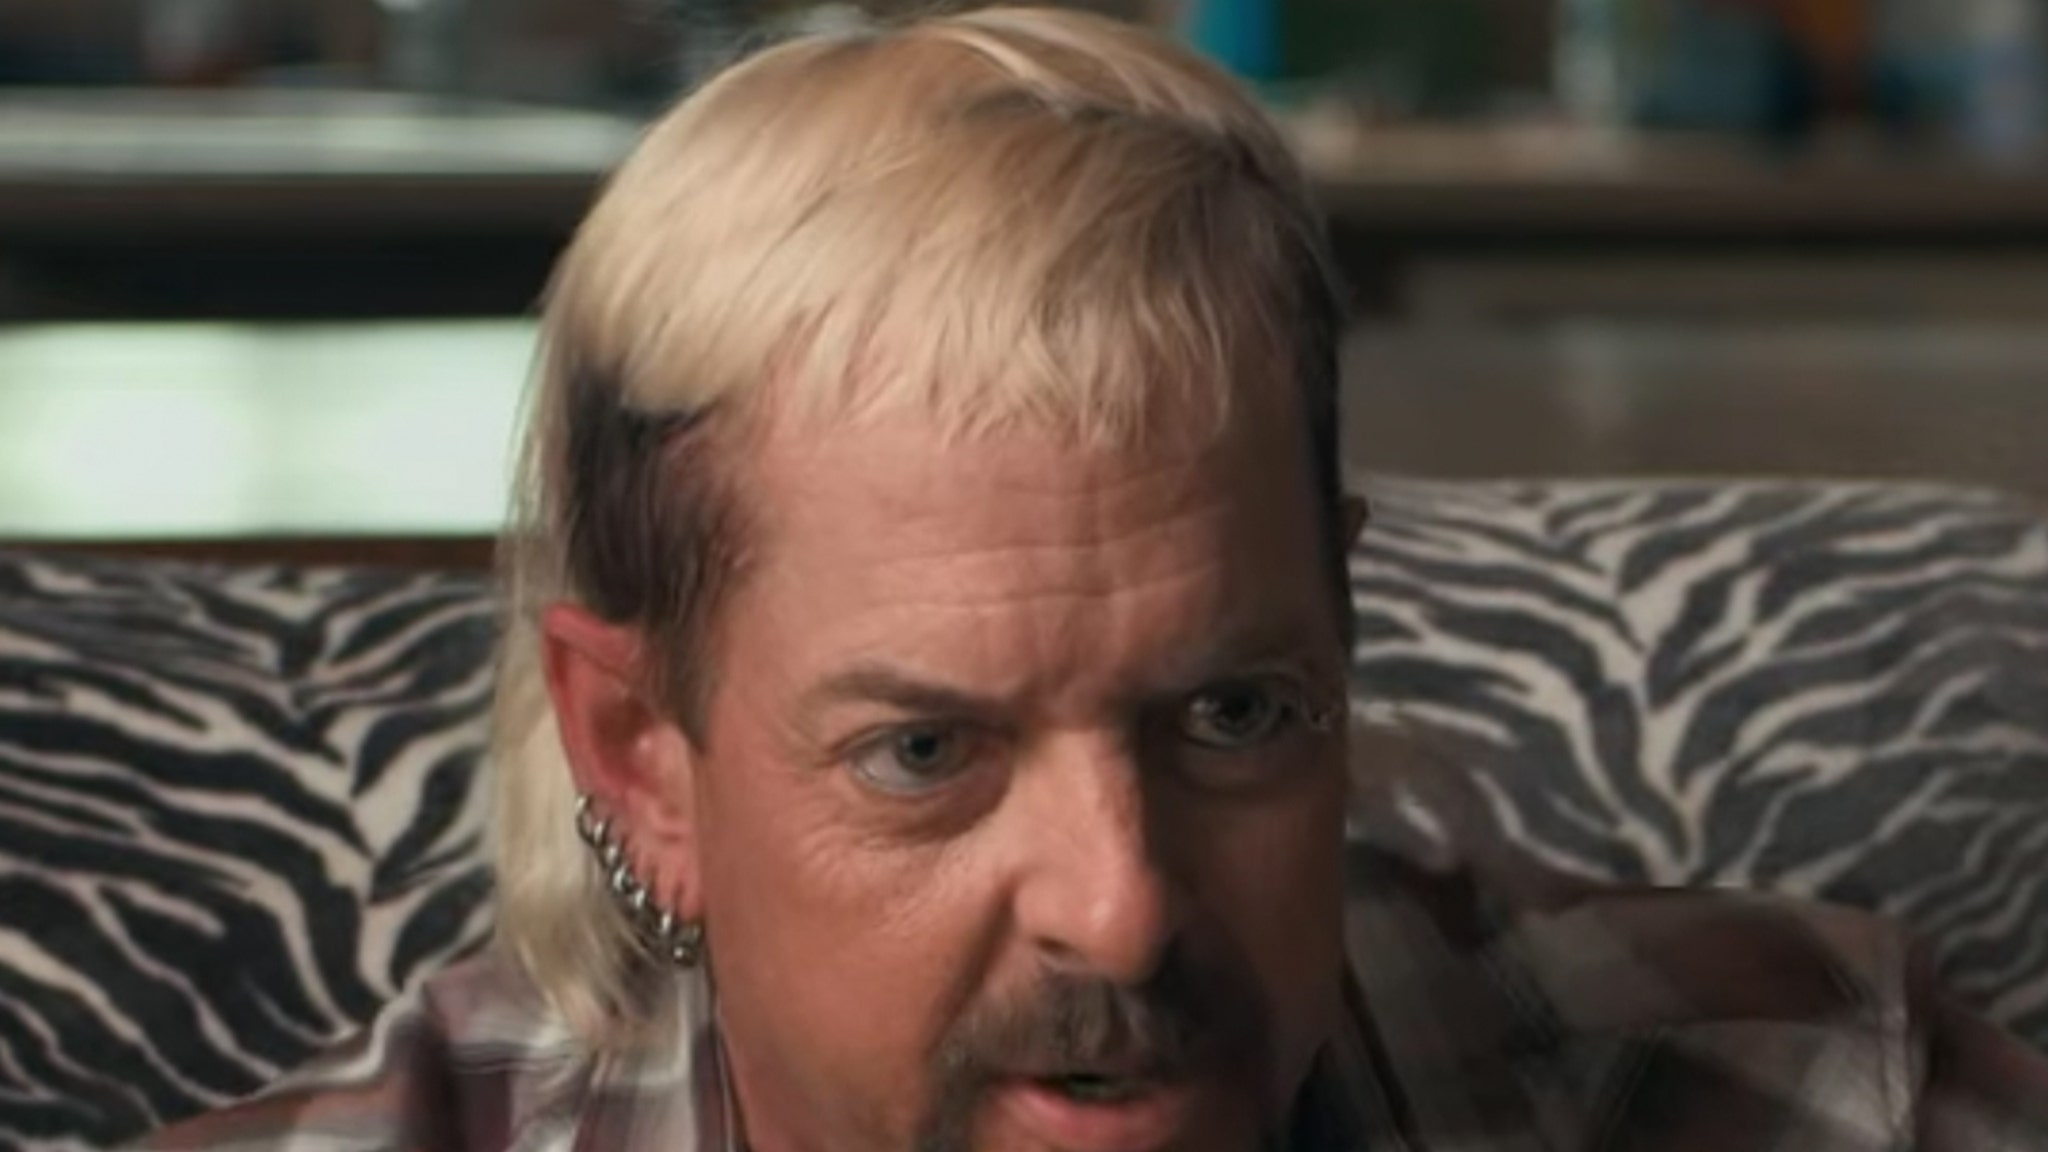 Joe Exotic Says His Cancer May Have Spread, He's 'Ready to Die'